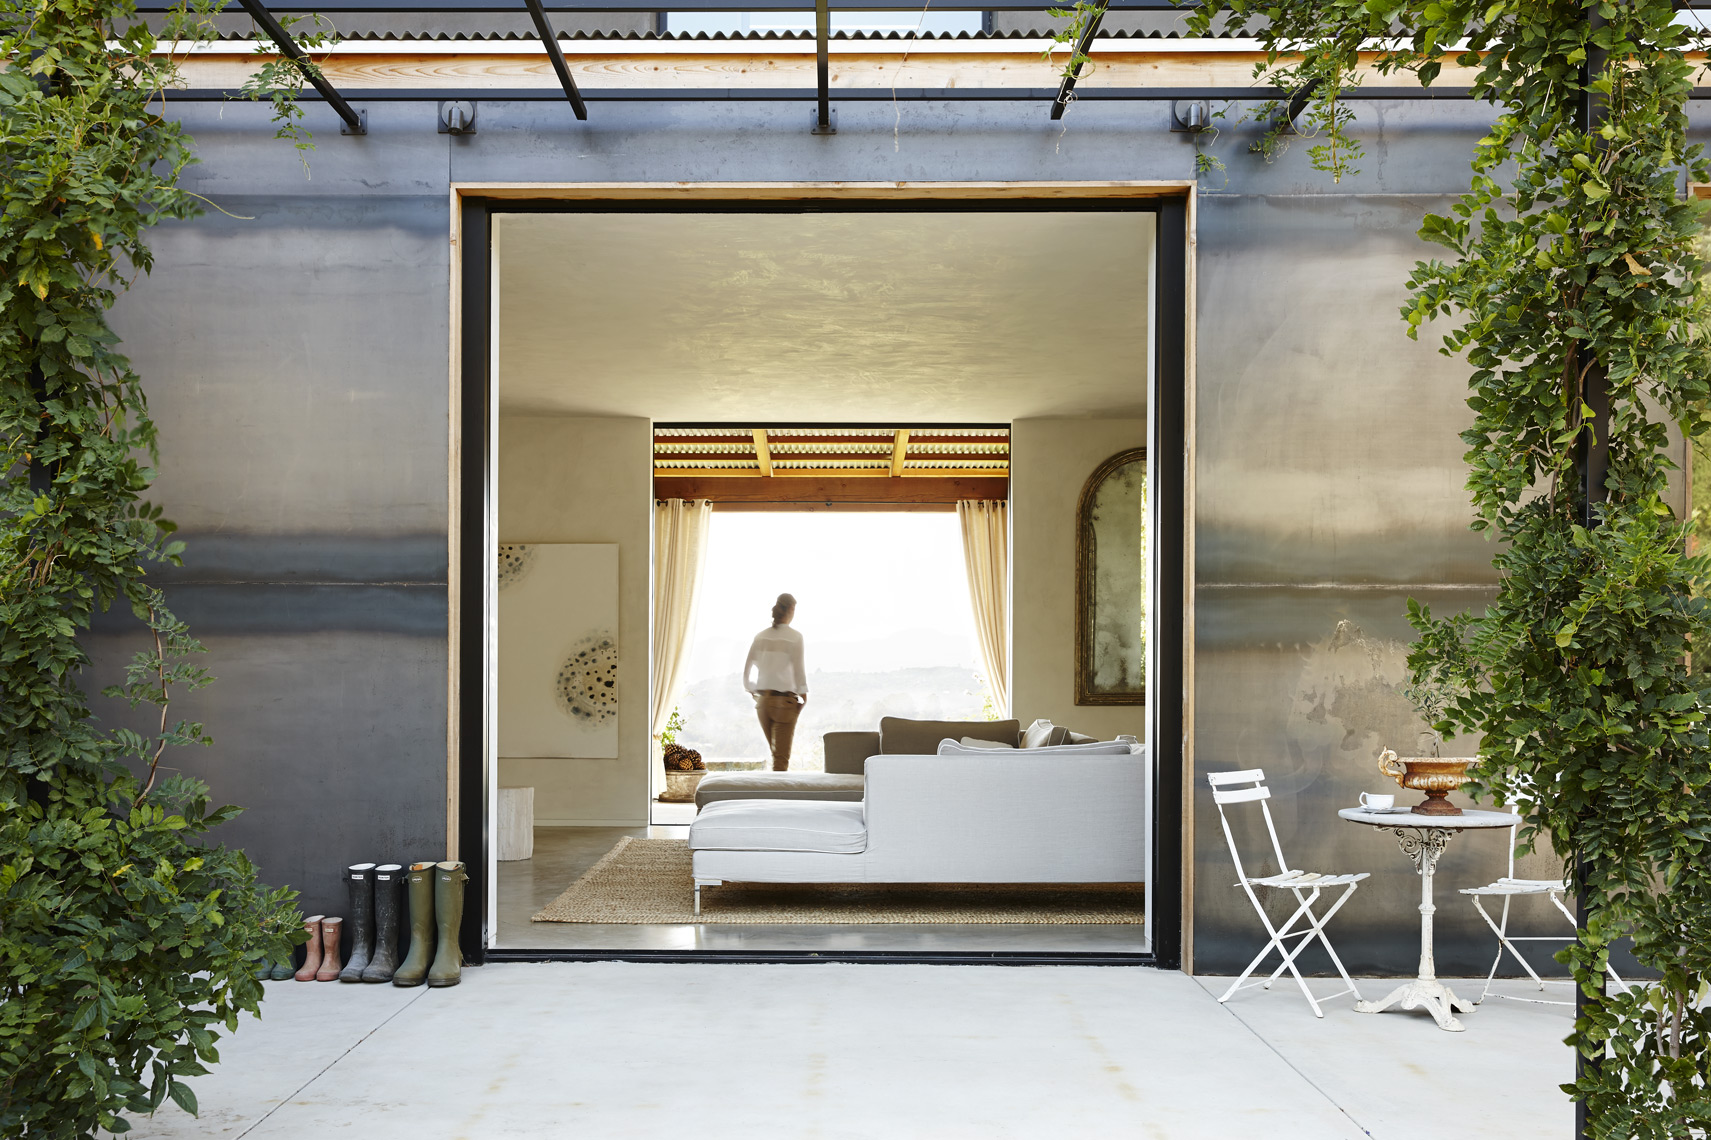 Exterior of modern house in Napa Valley with steel walls vines and woman walking through room Sean Dagen Photography